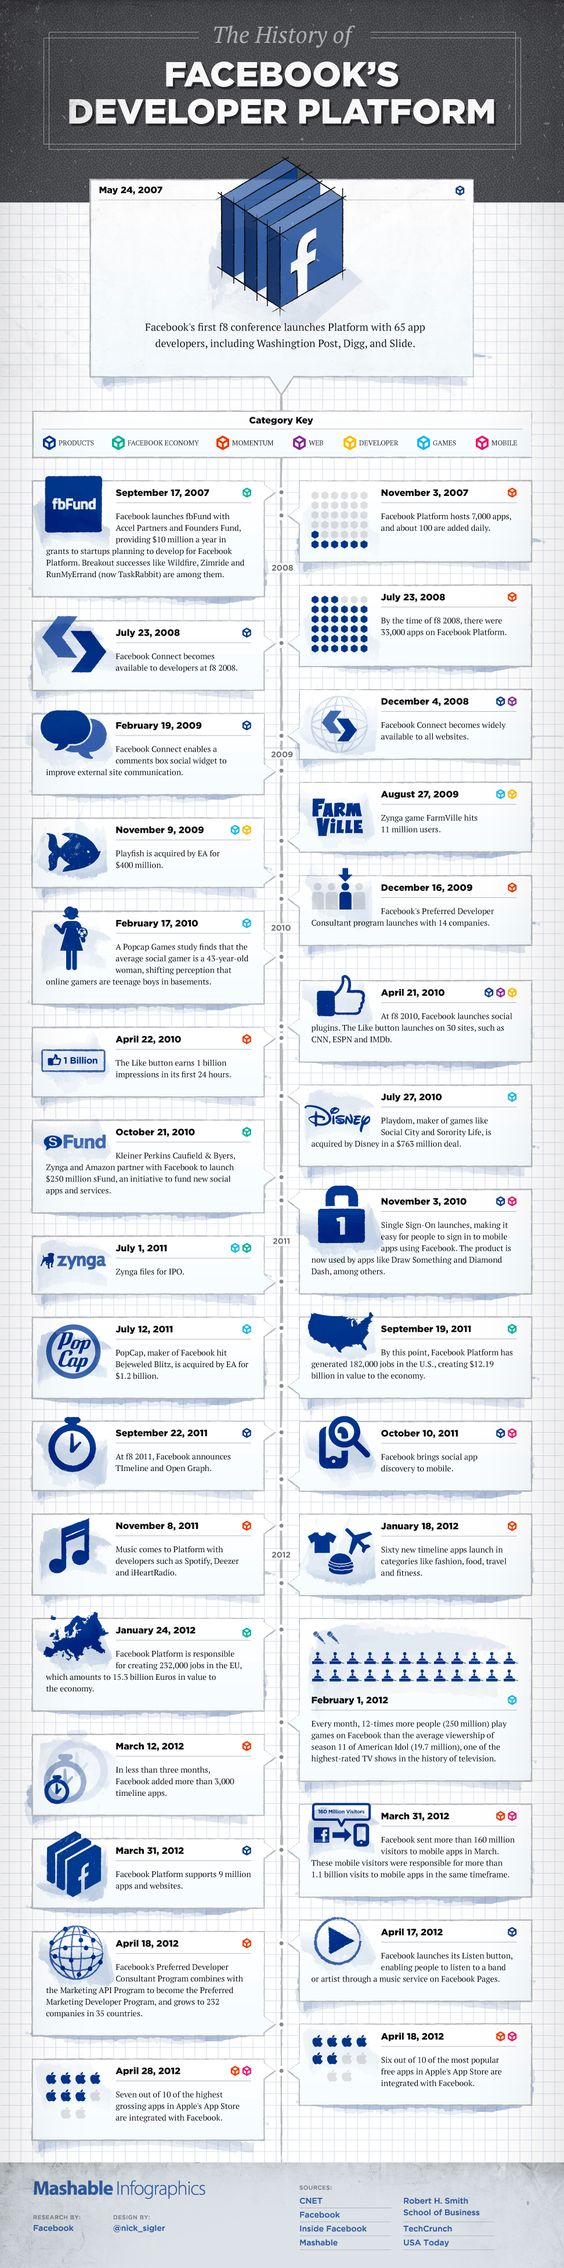 The History of #Facebook's Developper Platform -> infographic